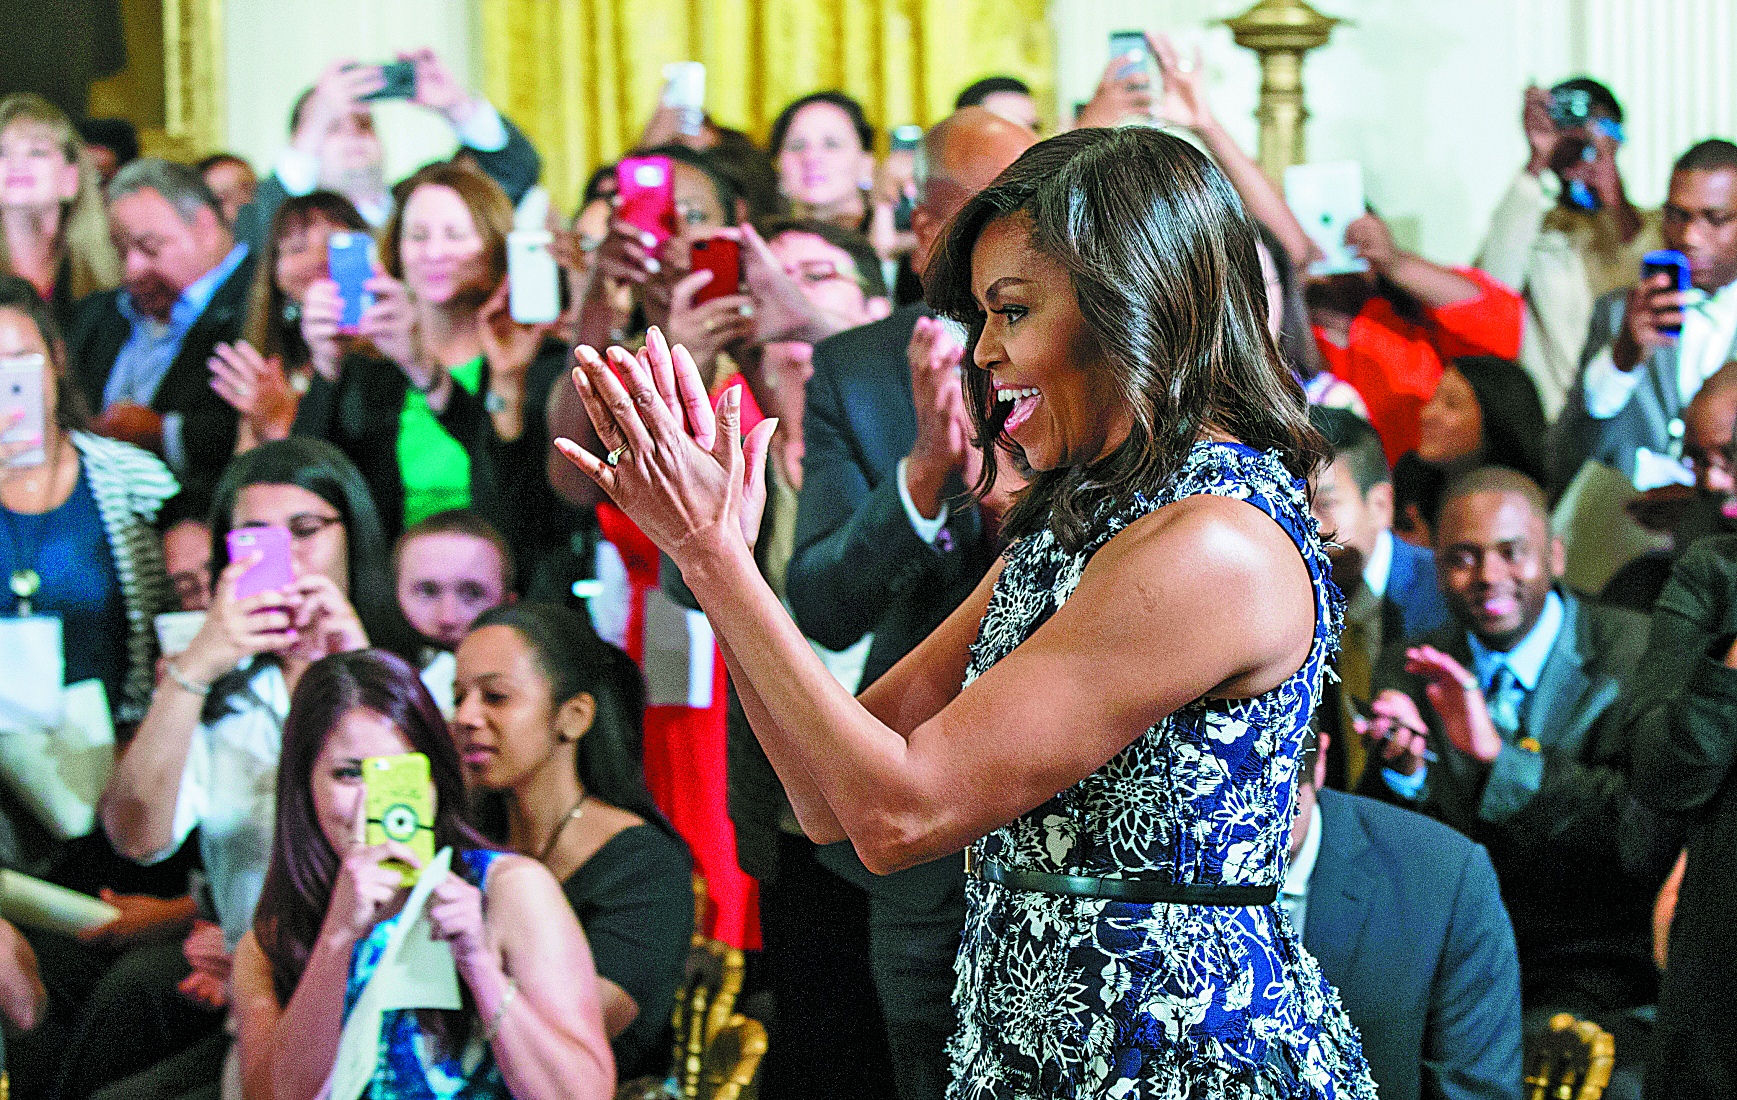 First lady Michelle Obama will be Monday's keynote Democratic convention speaker. (Al Drago/The New York Times)